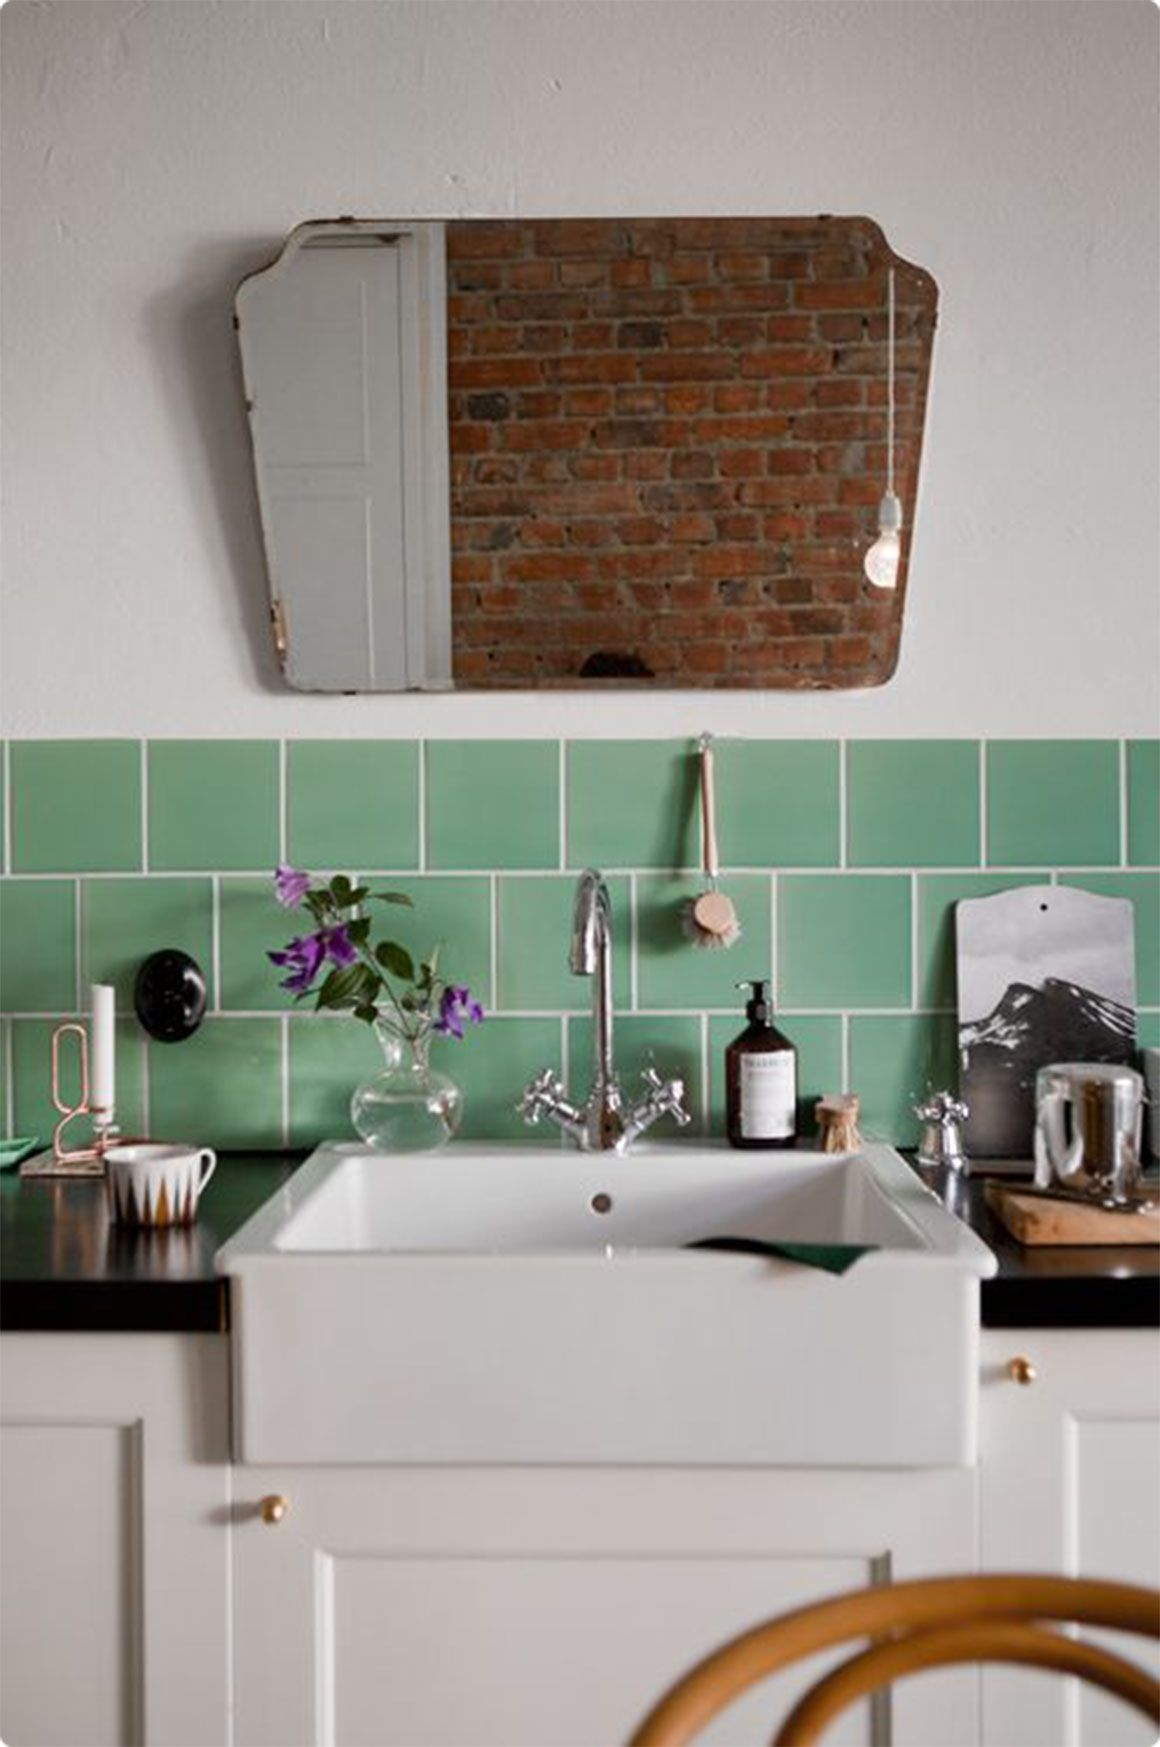 Make it special 7 simple ways to customize a rental kitchen mint green tiles and vintage mirror over kitchen sink dailygadgetfo Image collections